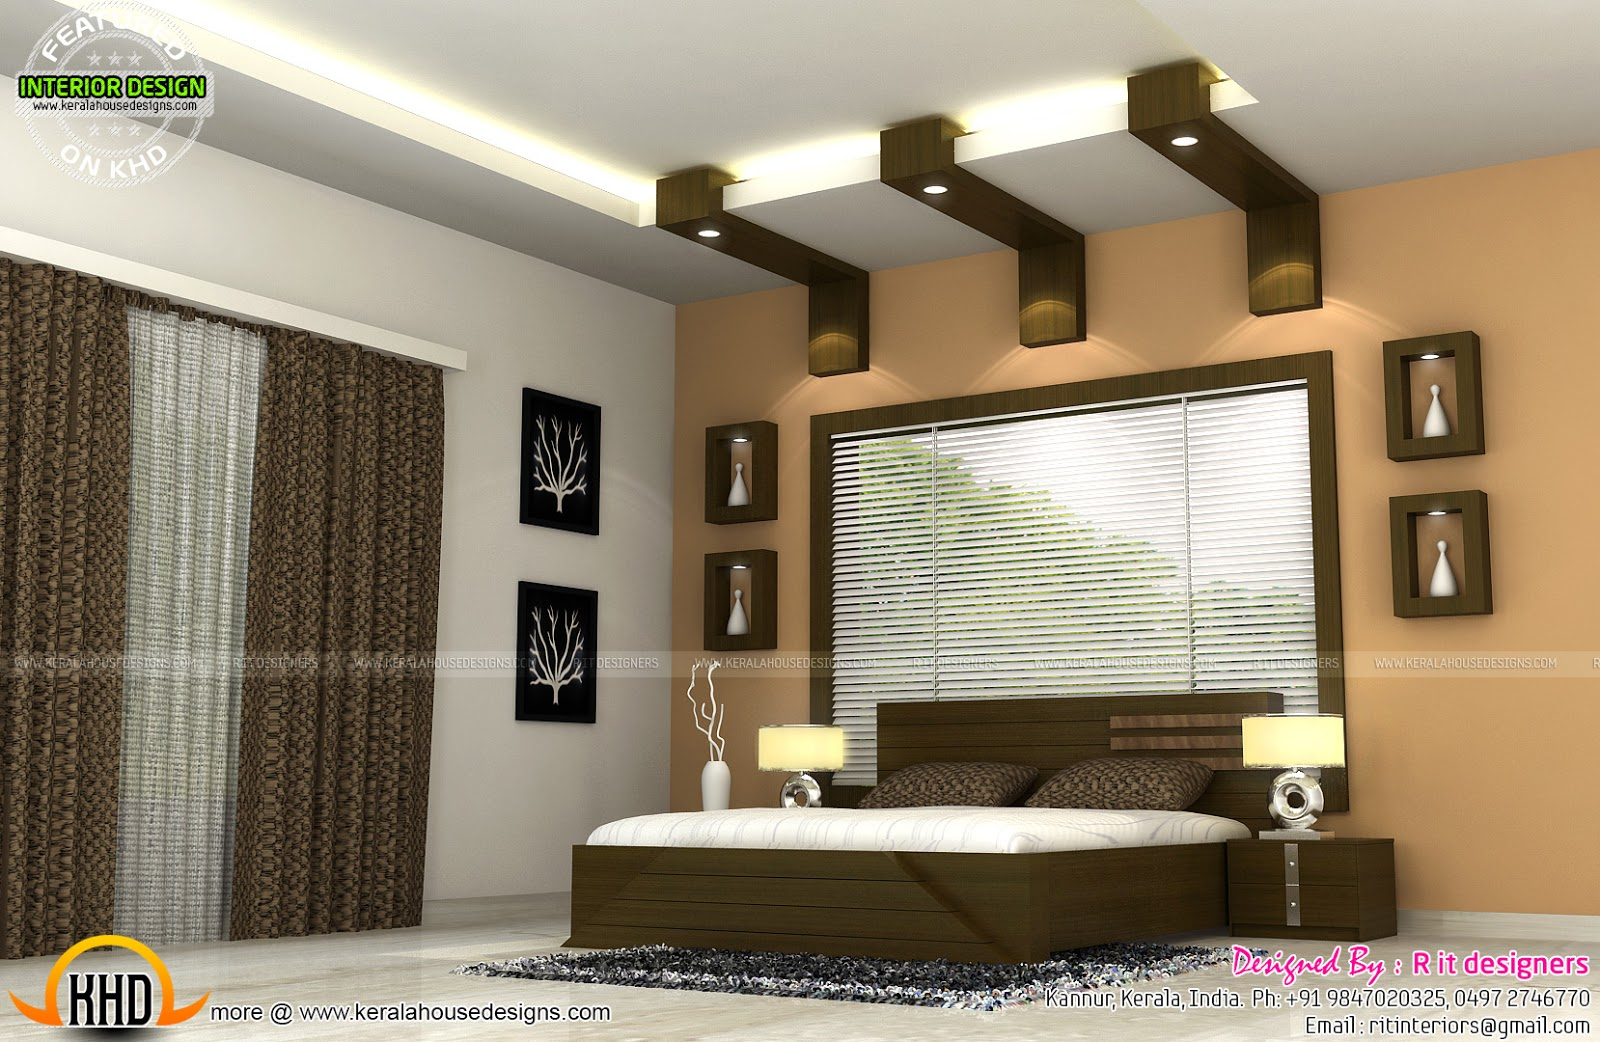 Interiors of bedrooms and kitchen kerala home design and for House bedroom ideas